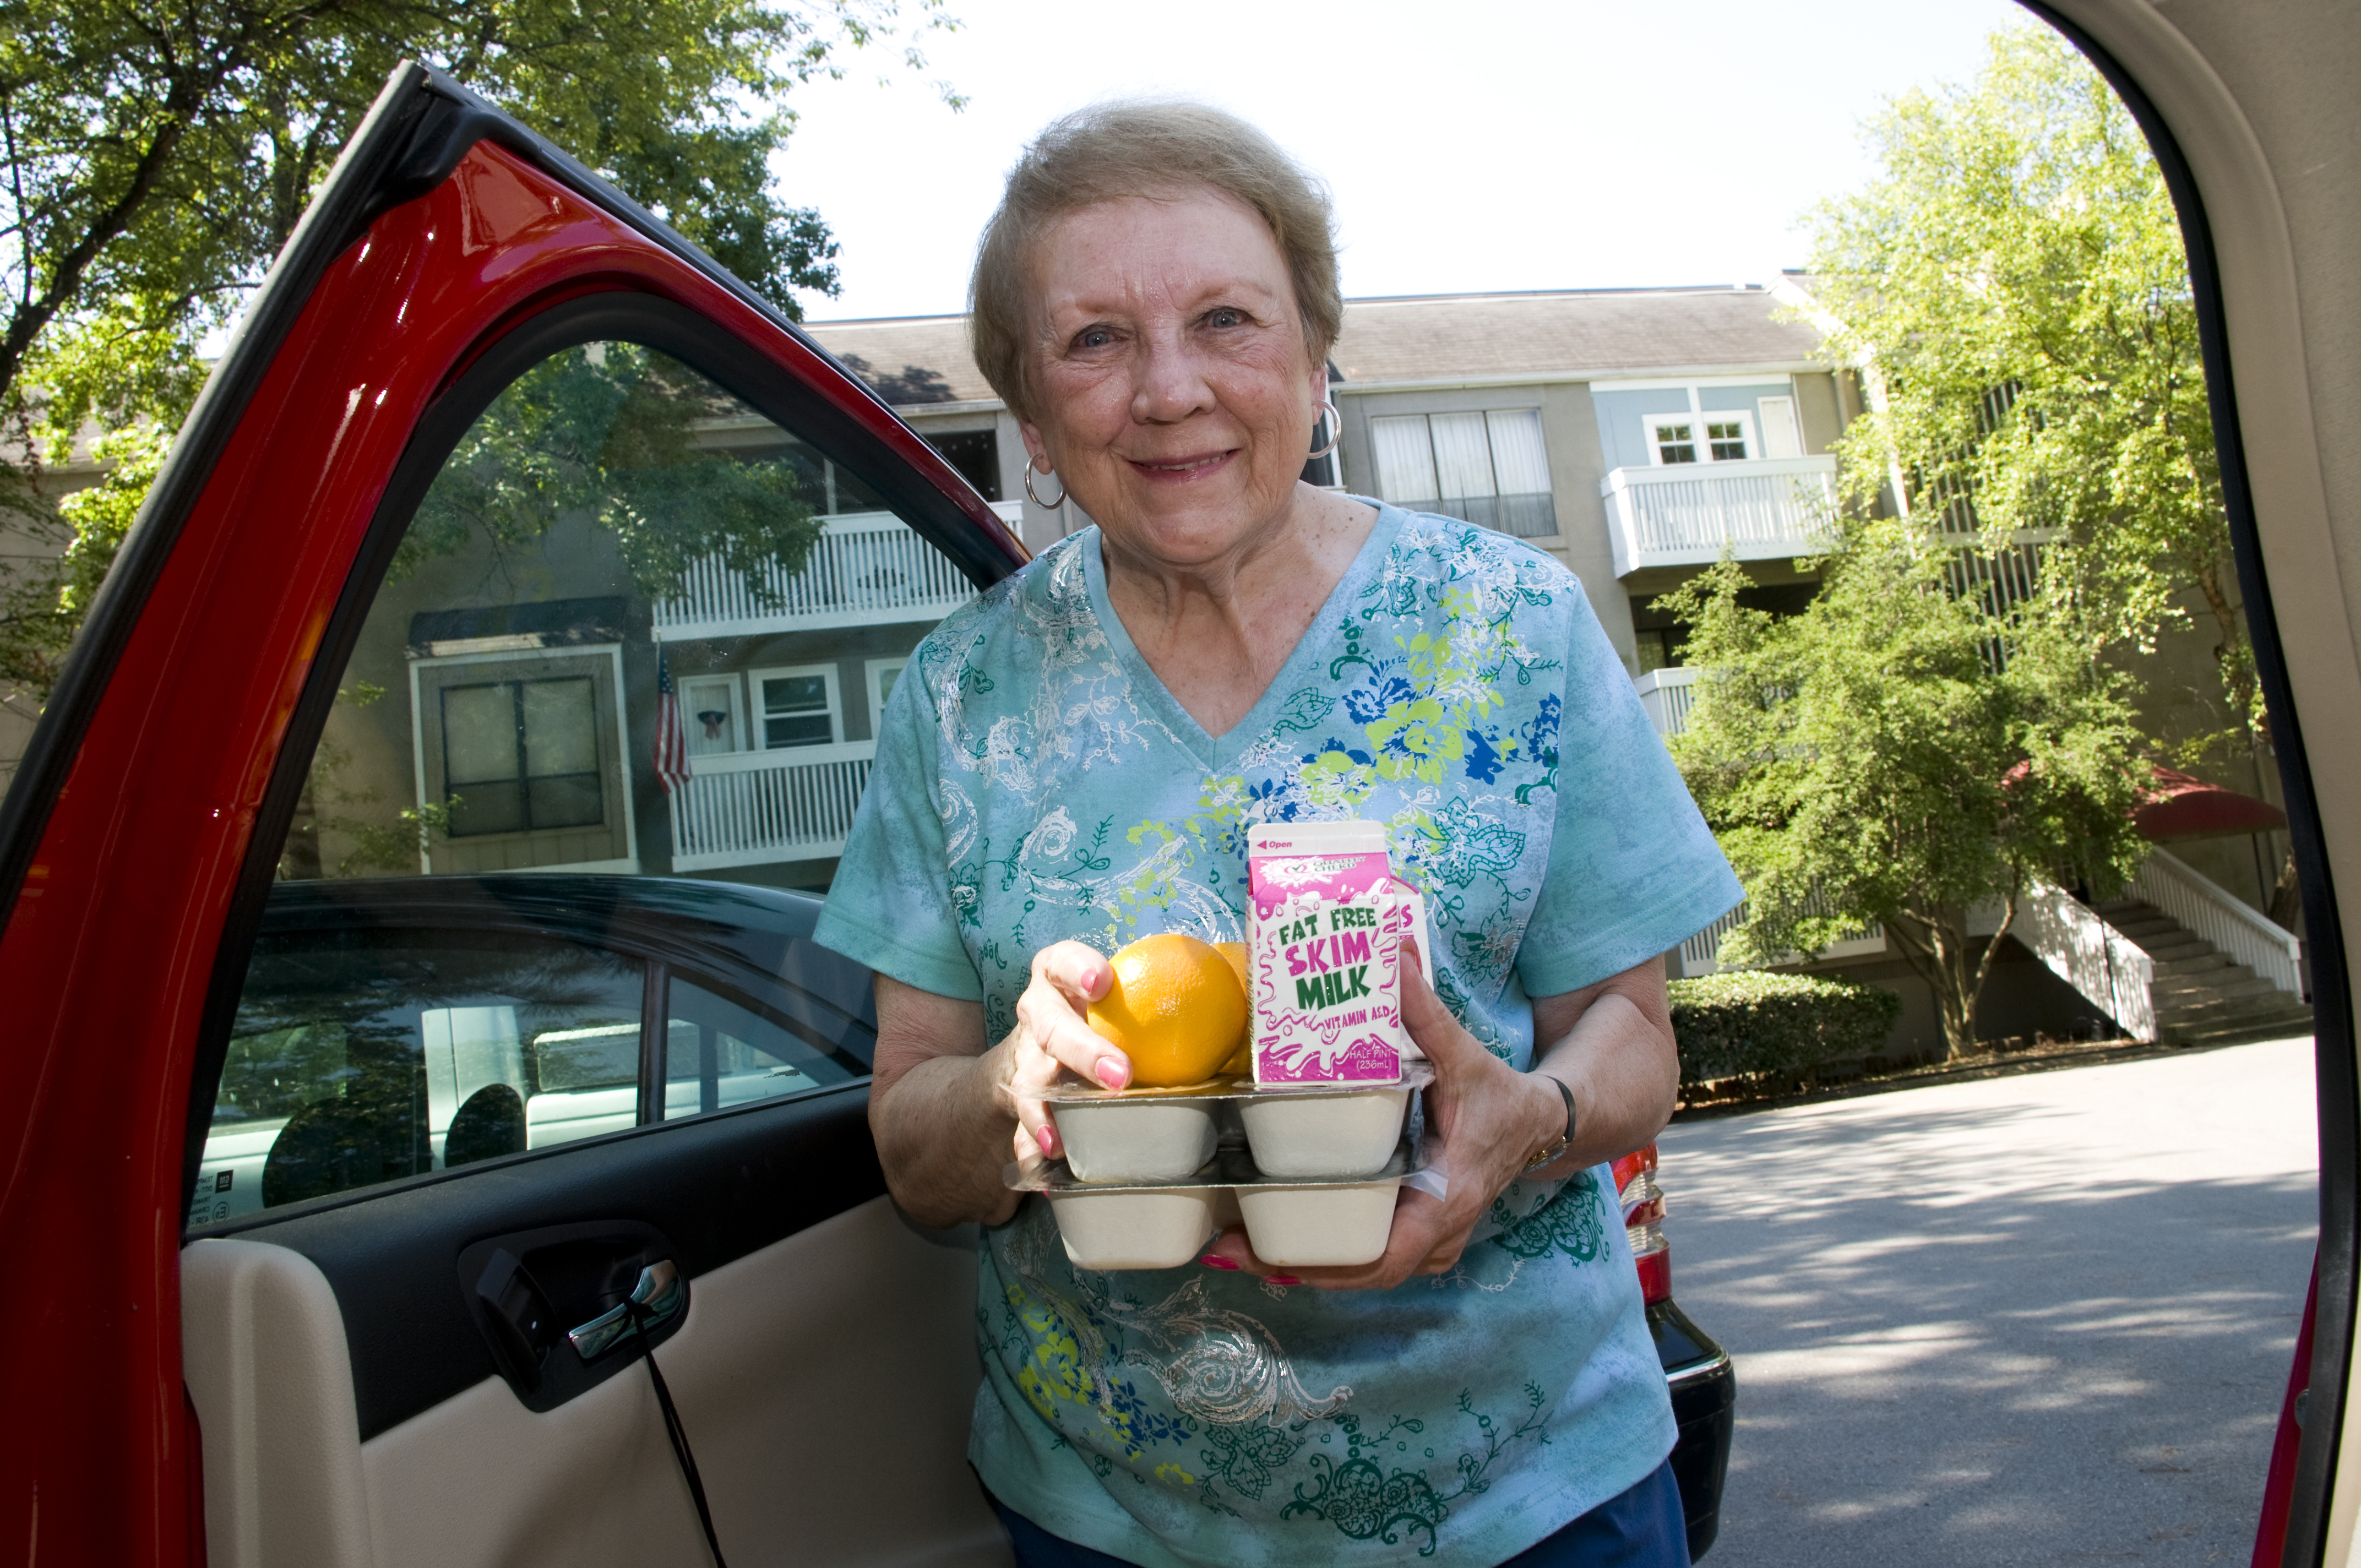 Meals on Wheels for Senior Citizens